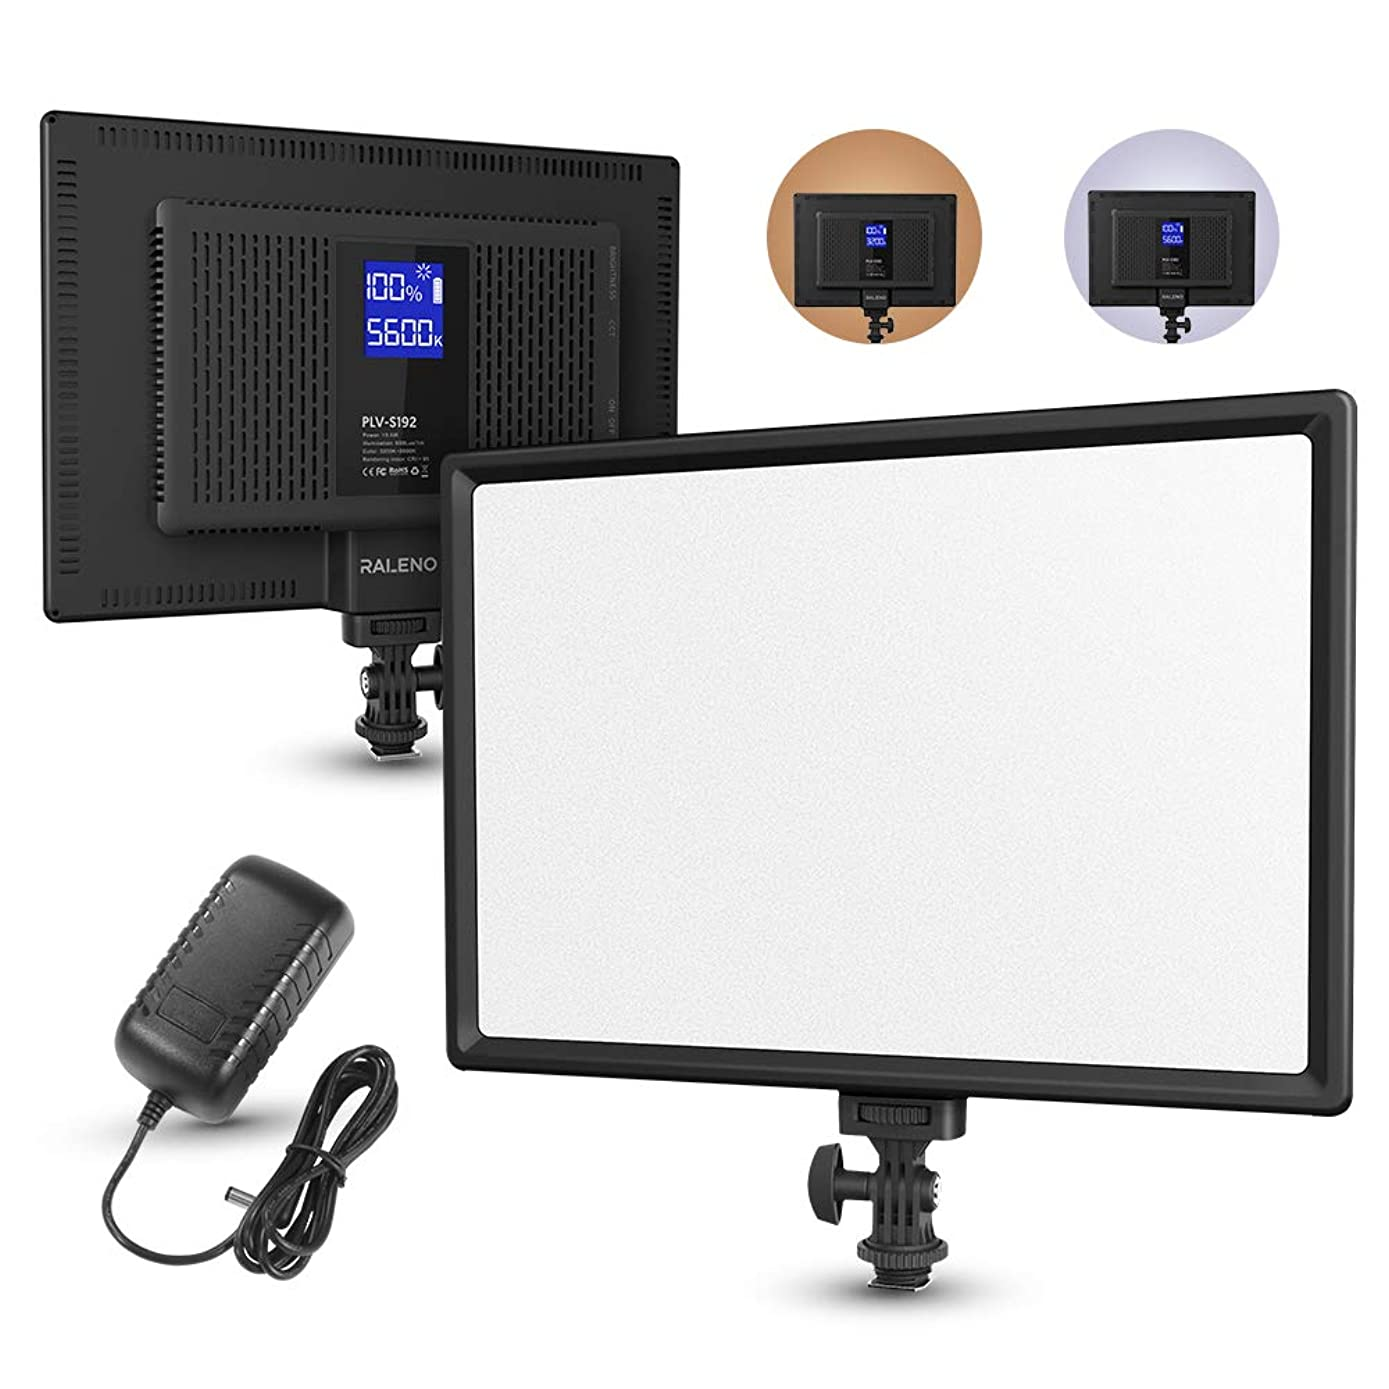 RALENO Led Video Light, Camera Camcorder Photo Light Panel with LCD Display Built-in Lithium Battery Dimmable 3300K-5600K Bi-Color CRI 95+ Ultra-Thin Light for YouTube Video Portraits Shooting